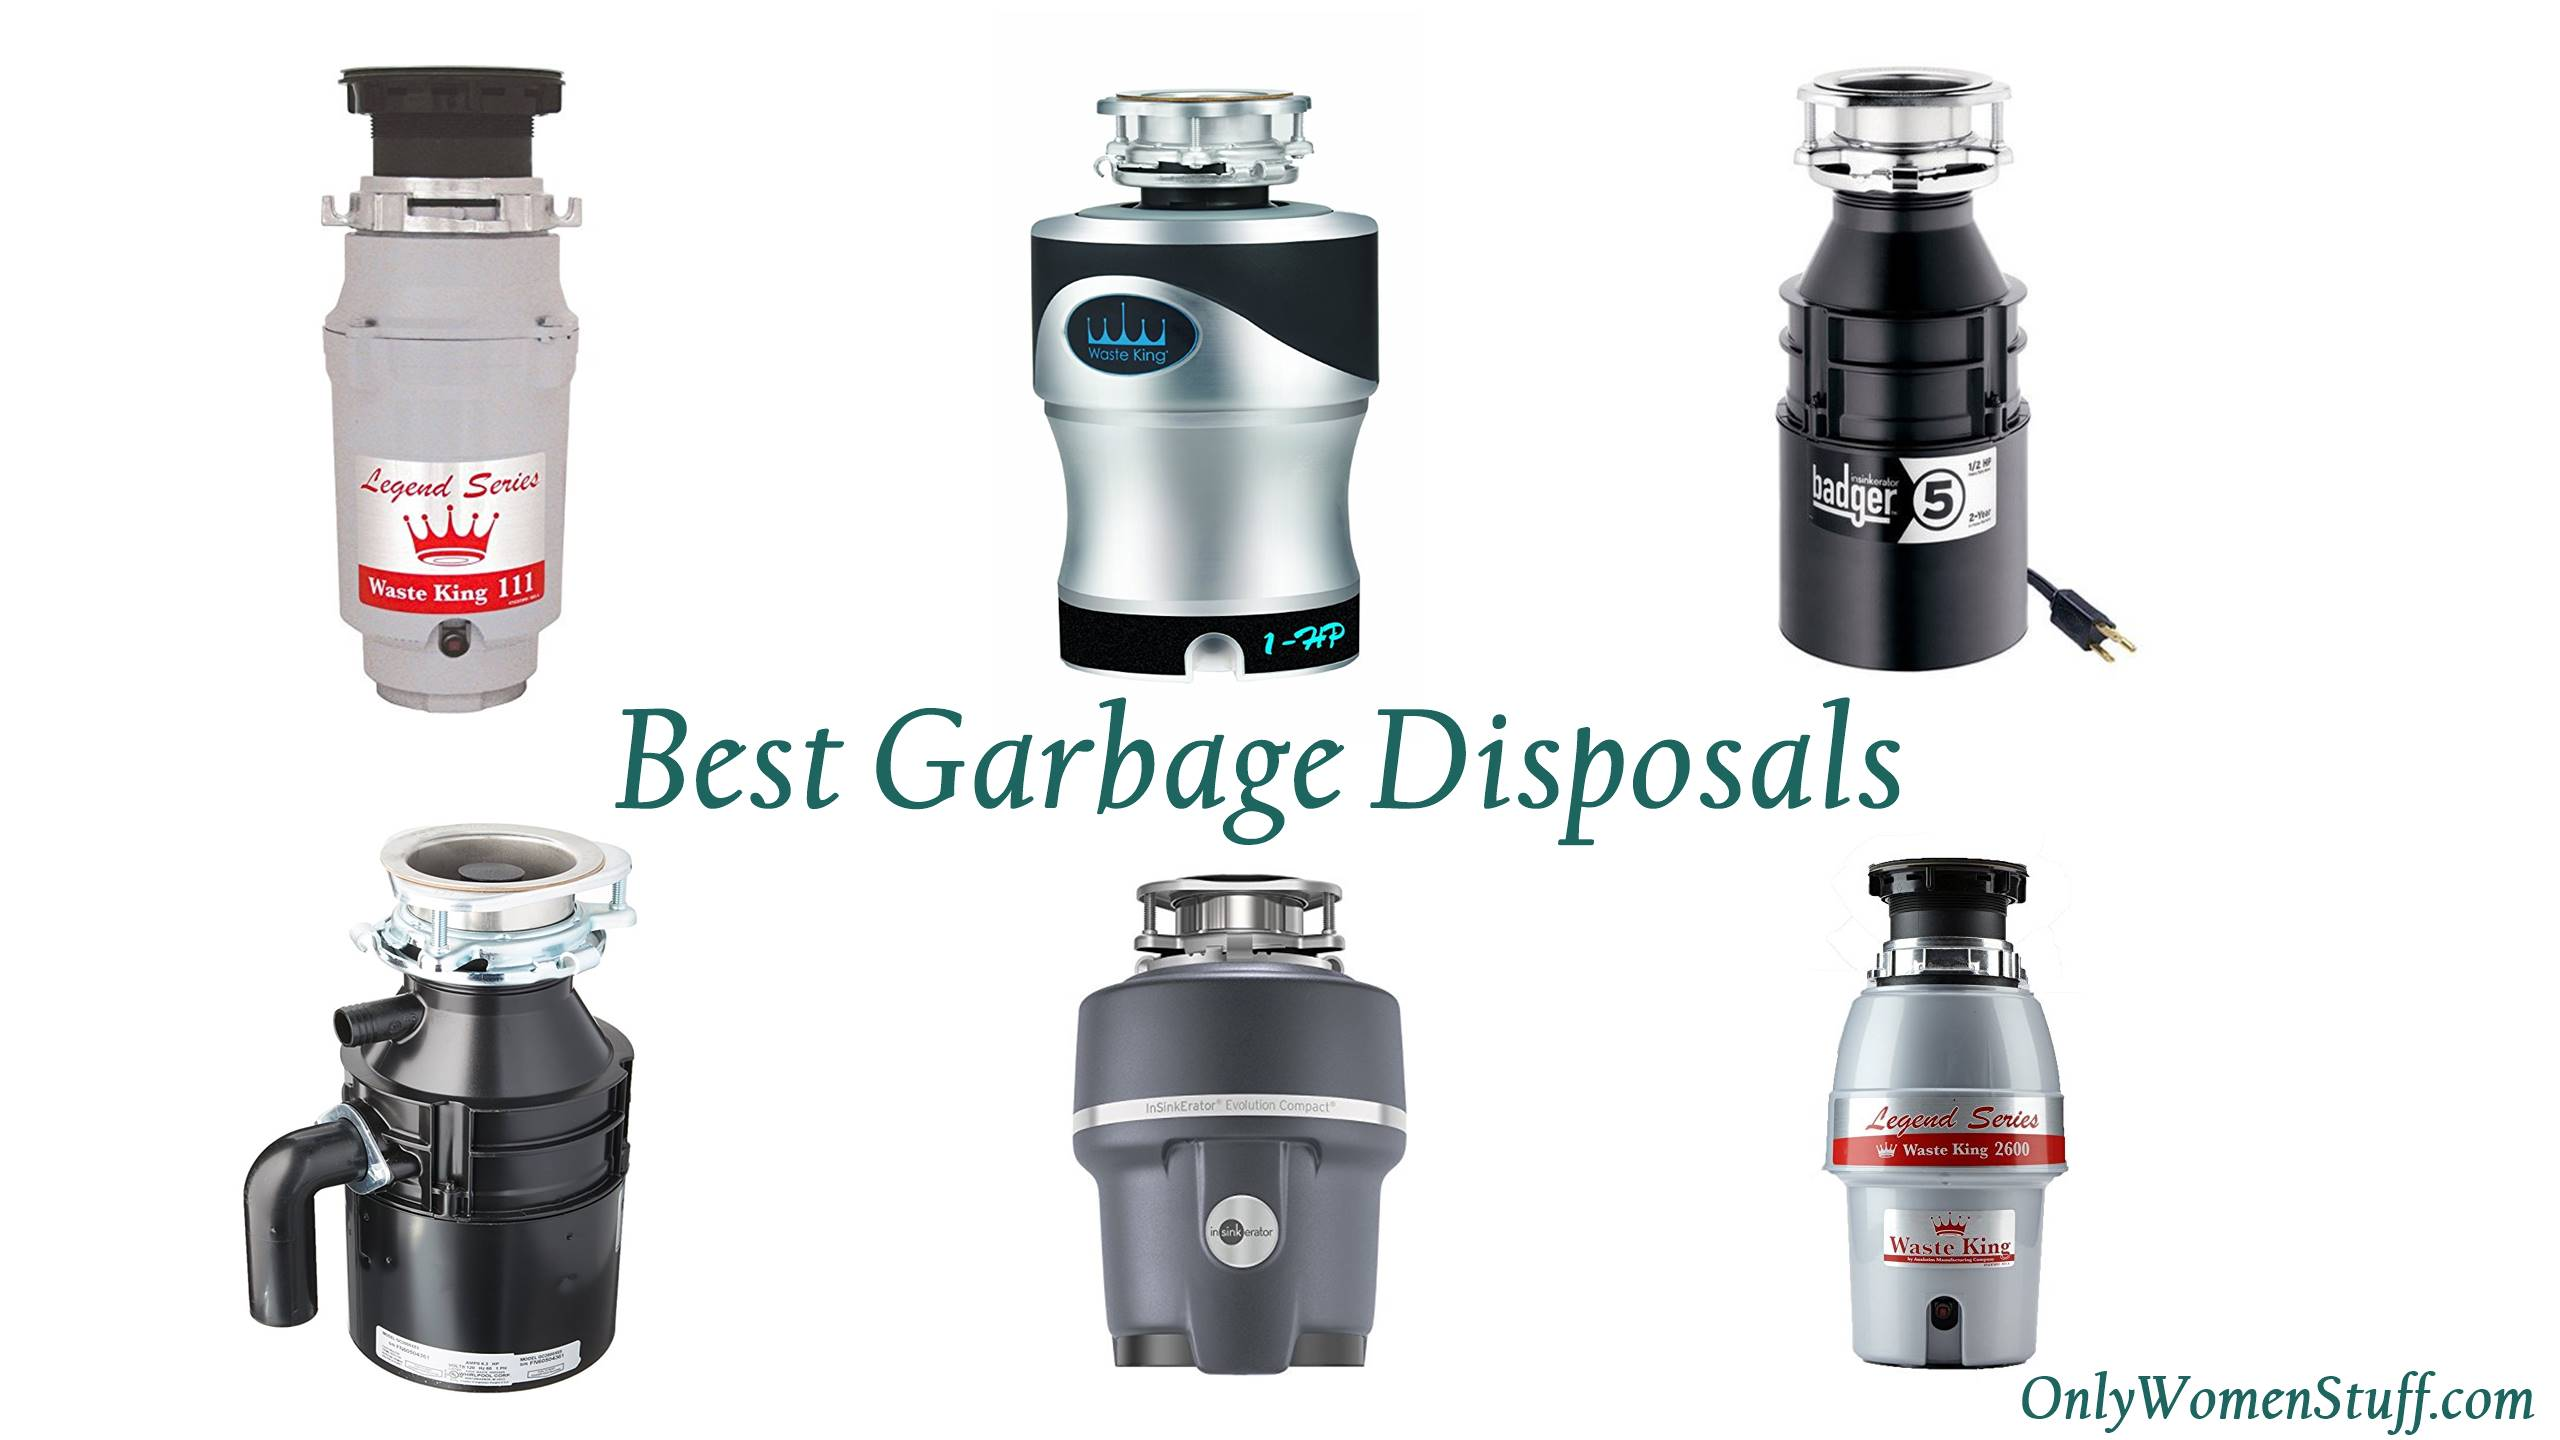 10 Best Garbage Disposals With Reviews